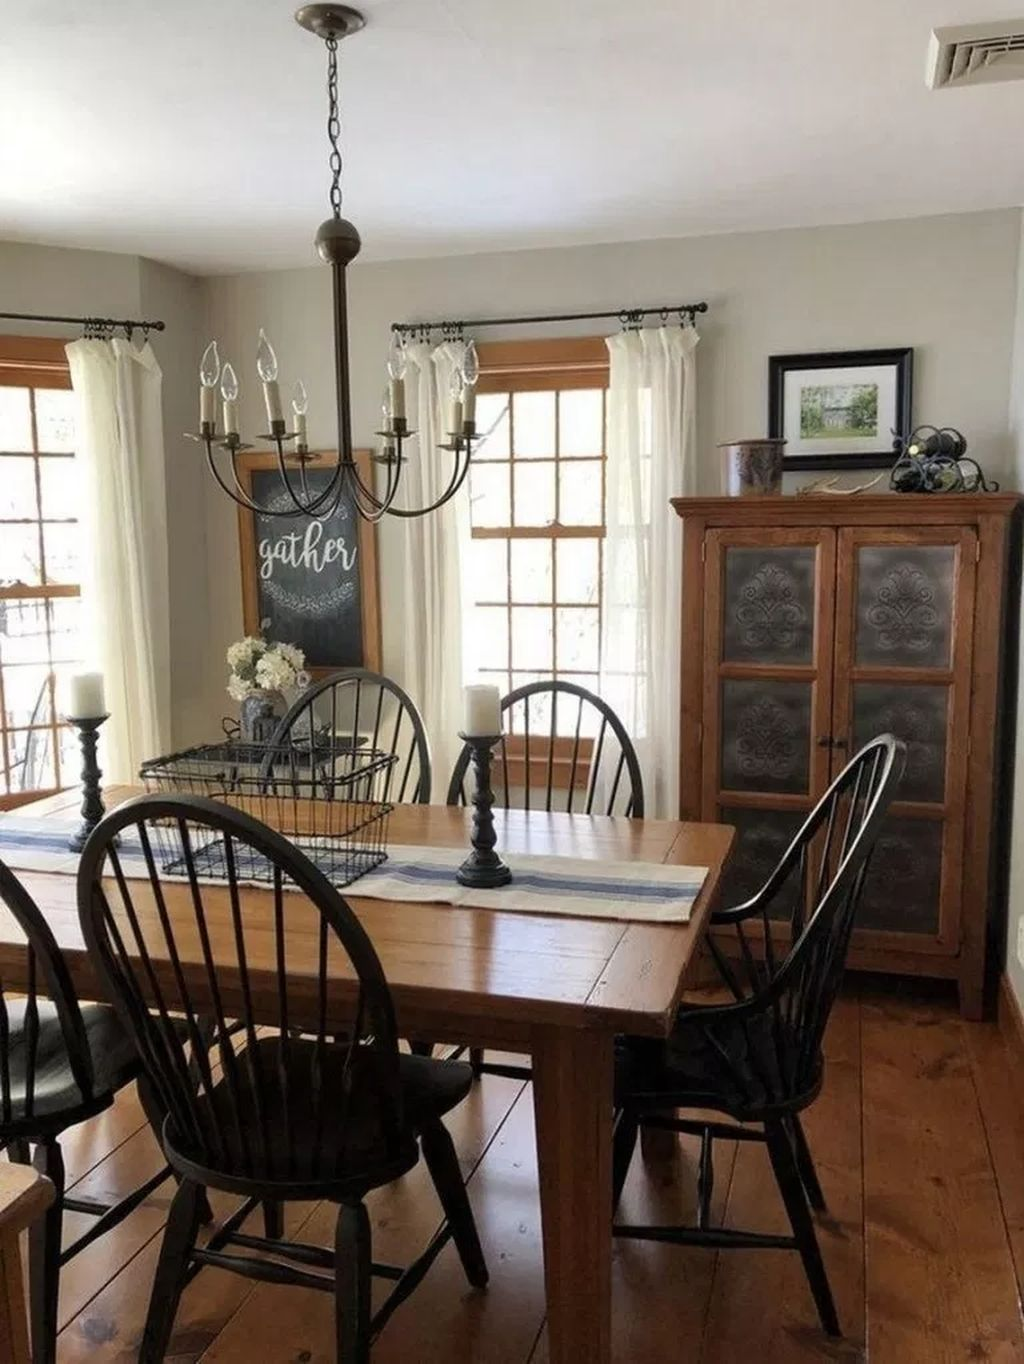 Popular Rustic Farmhouse Style Ideas For Dining Room Decor 17